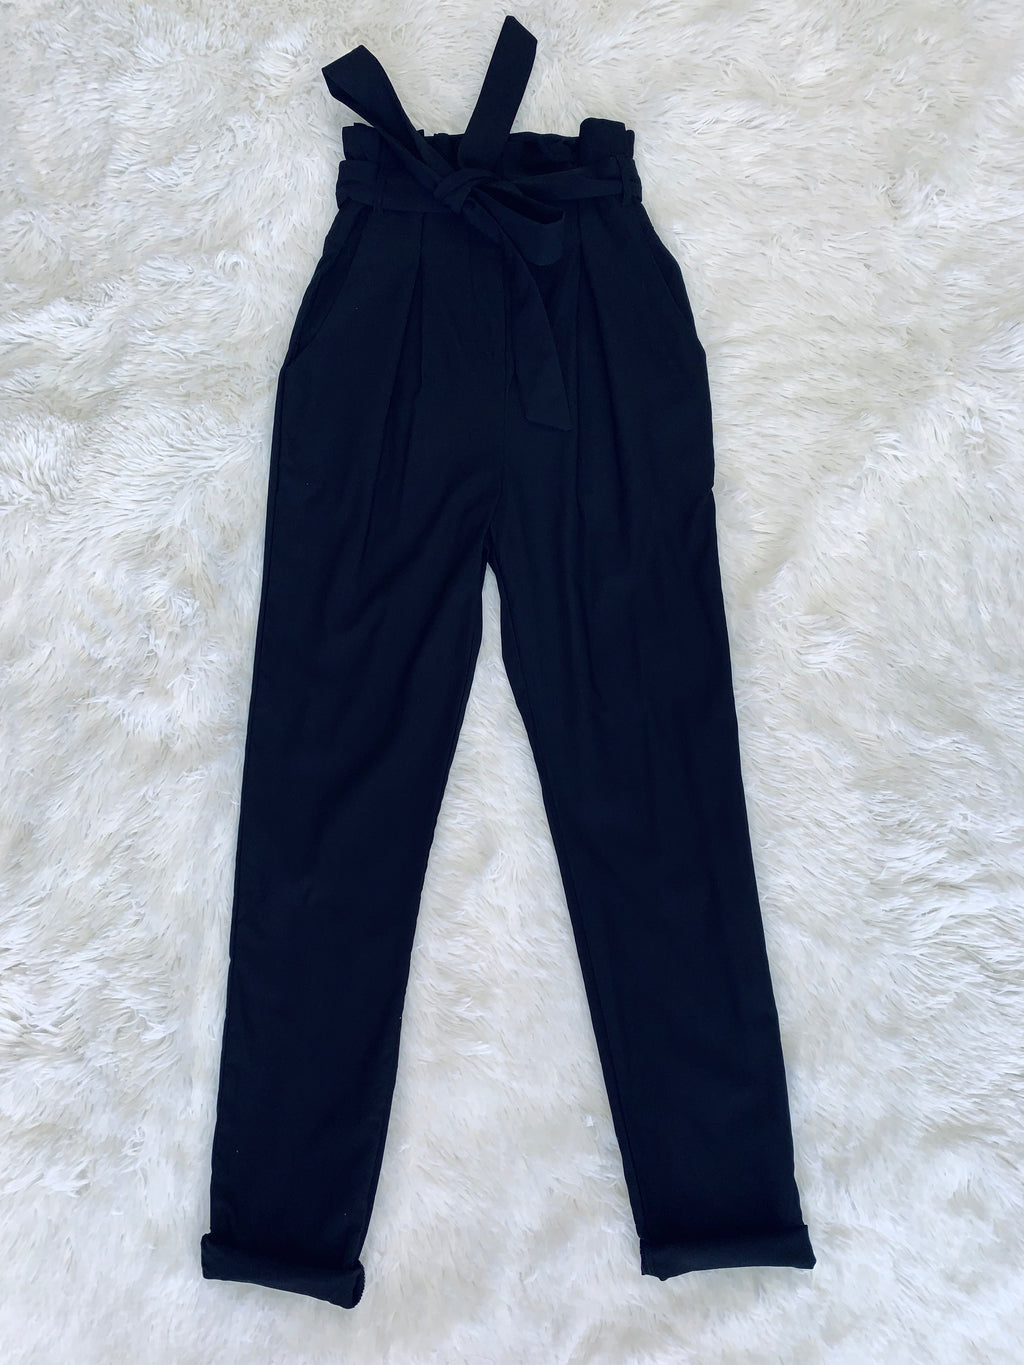 Tie Waist Dress Pants - Black